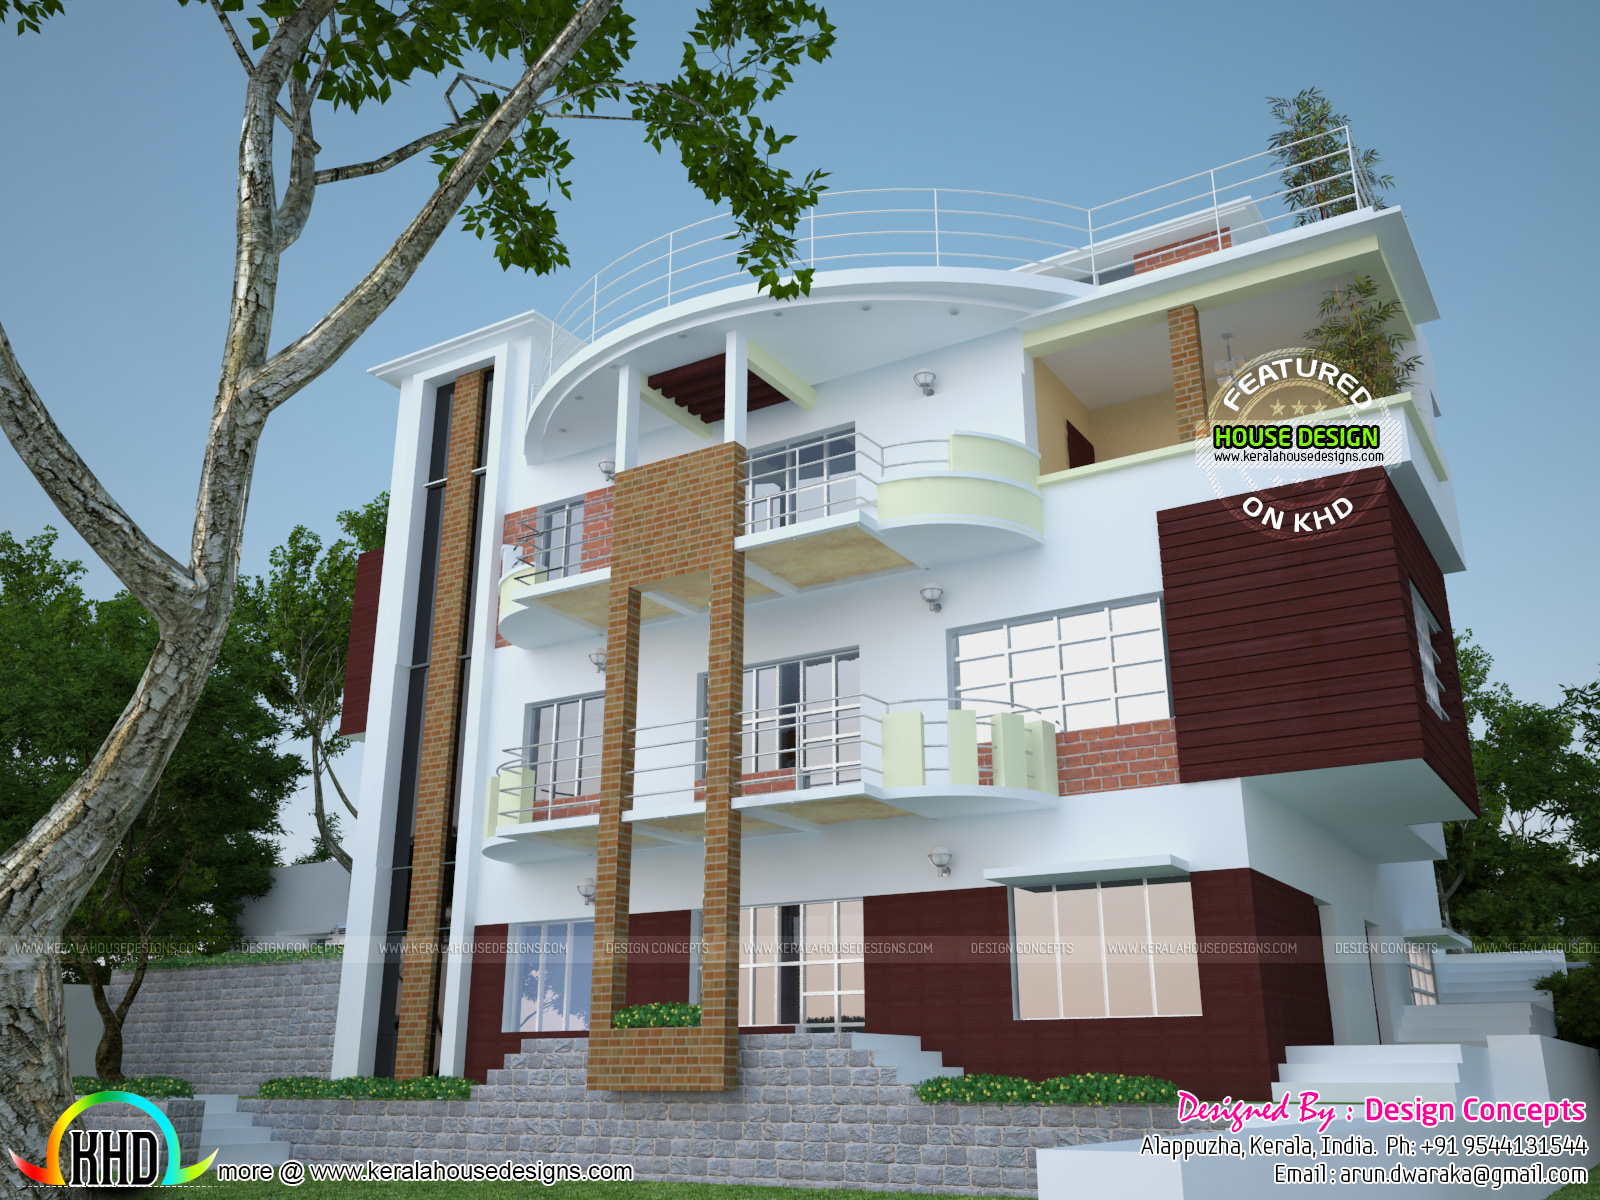 multi family 4-plex home plan - kerala home design and floor plans